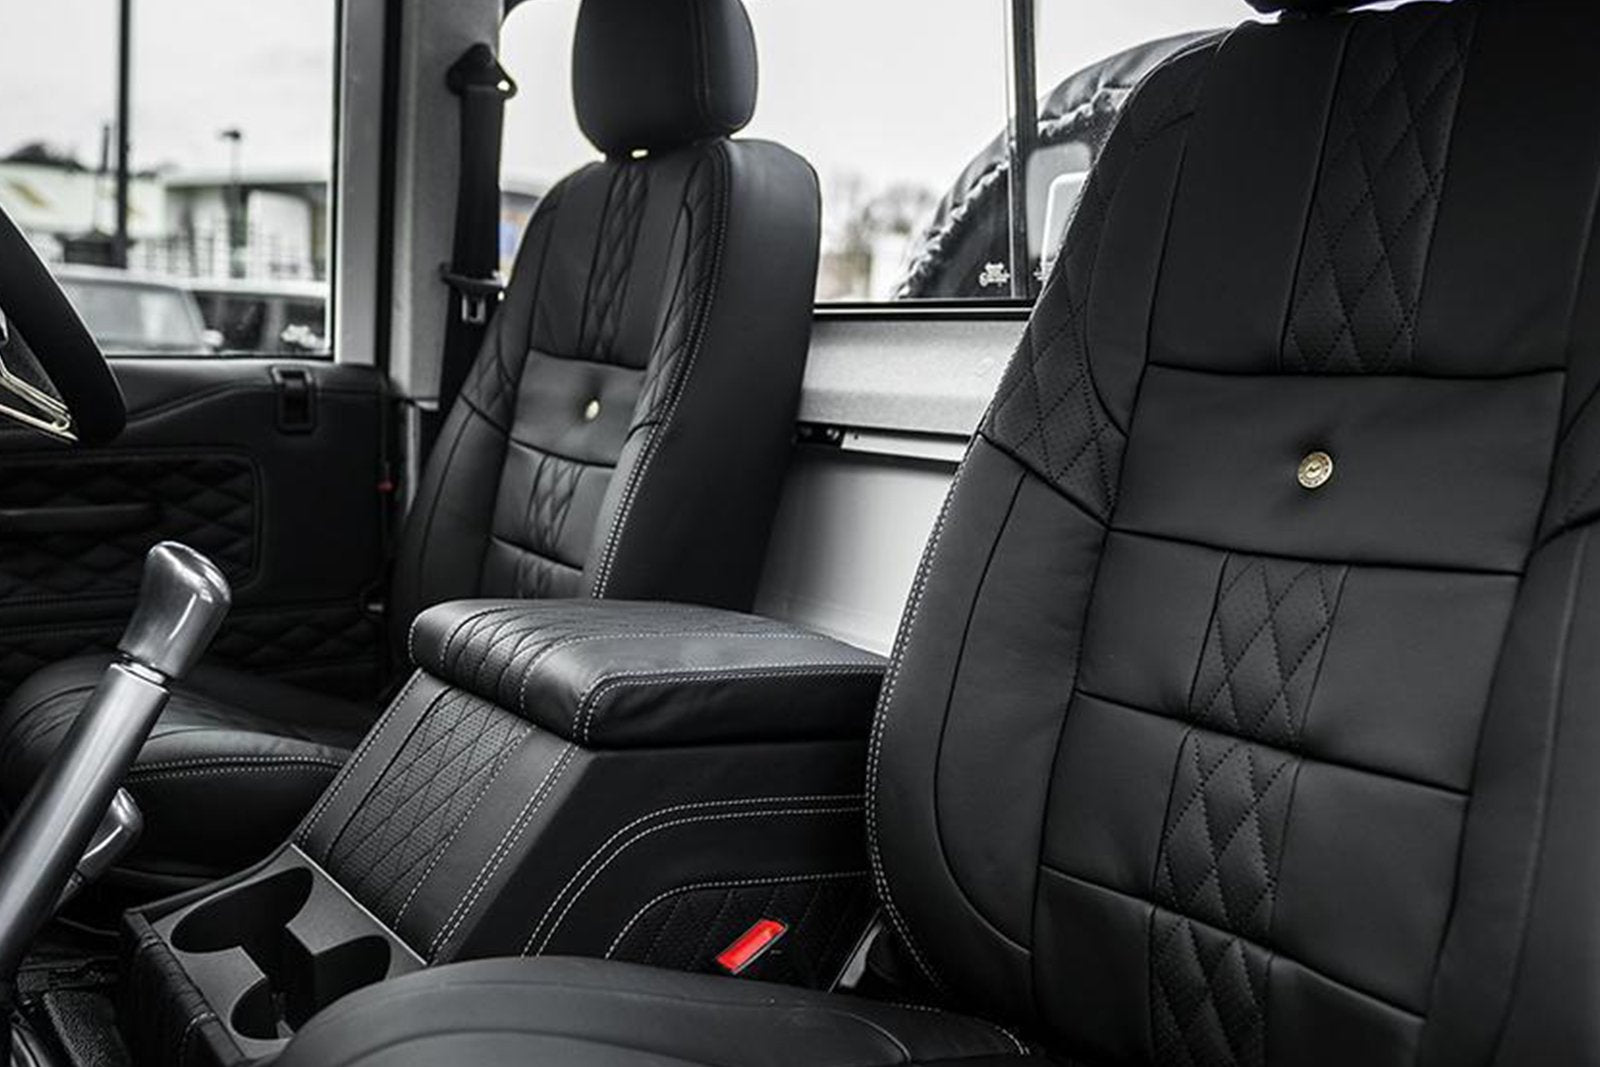 LAND ROVER DEFENDER 90 (1991-2016) PICKUP COMFORT INTERIOR - 2 SEATS